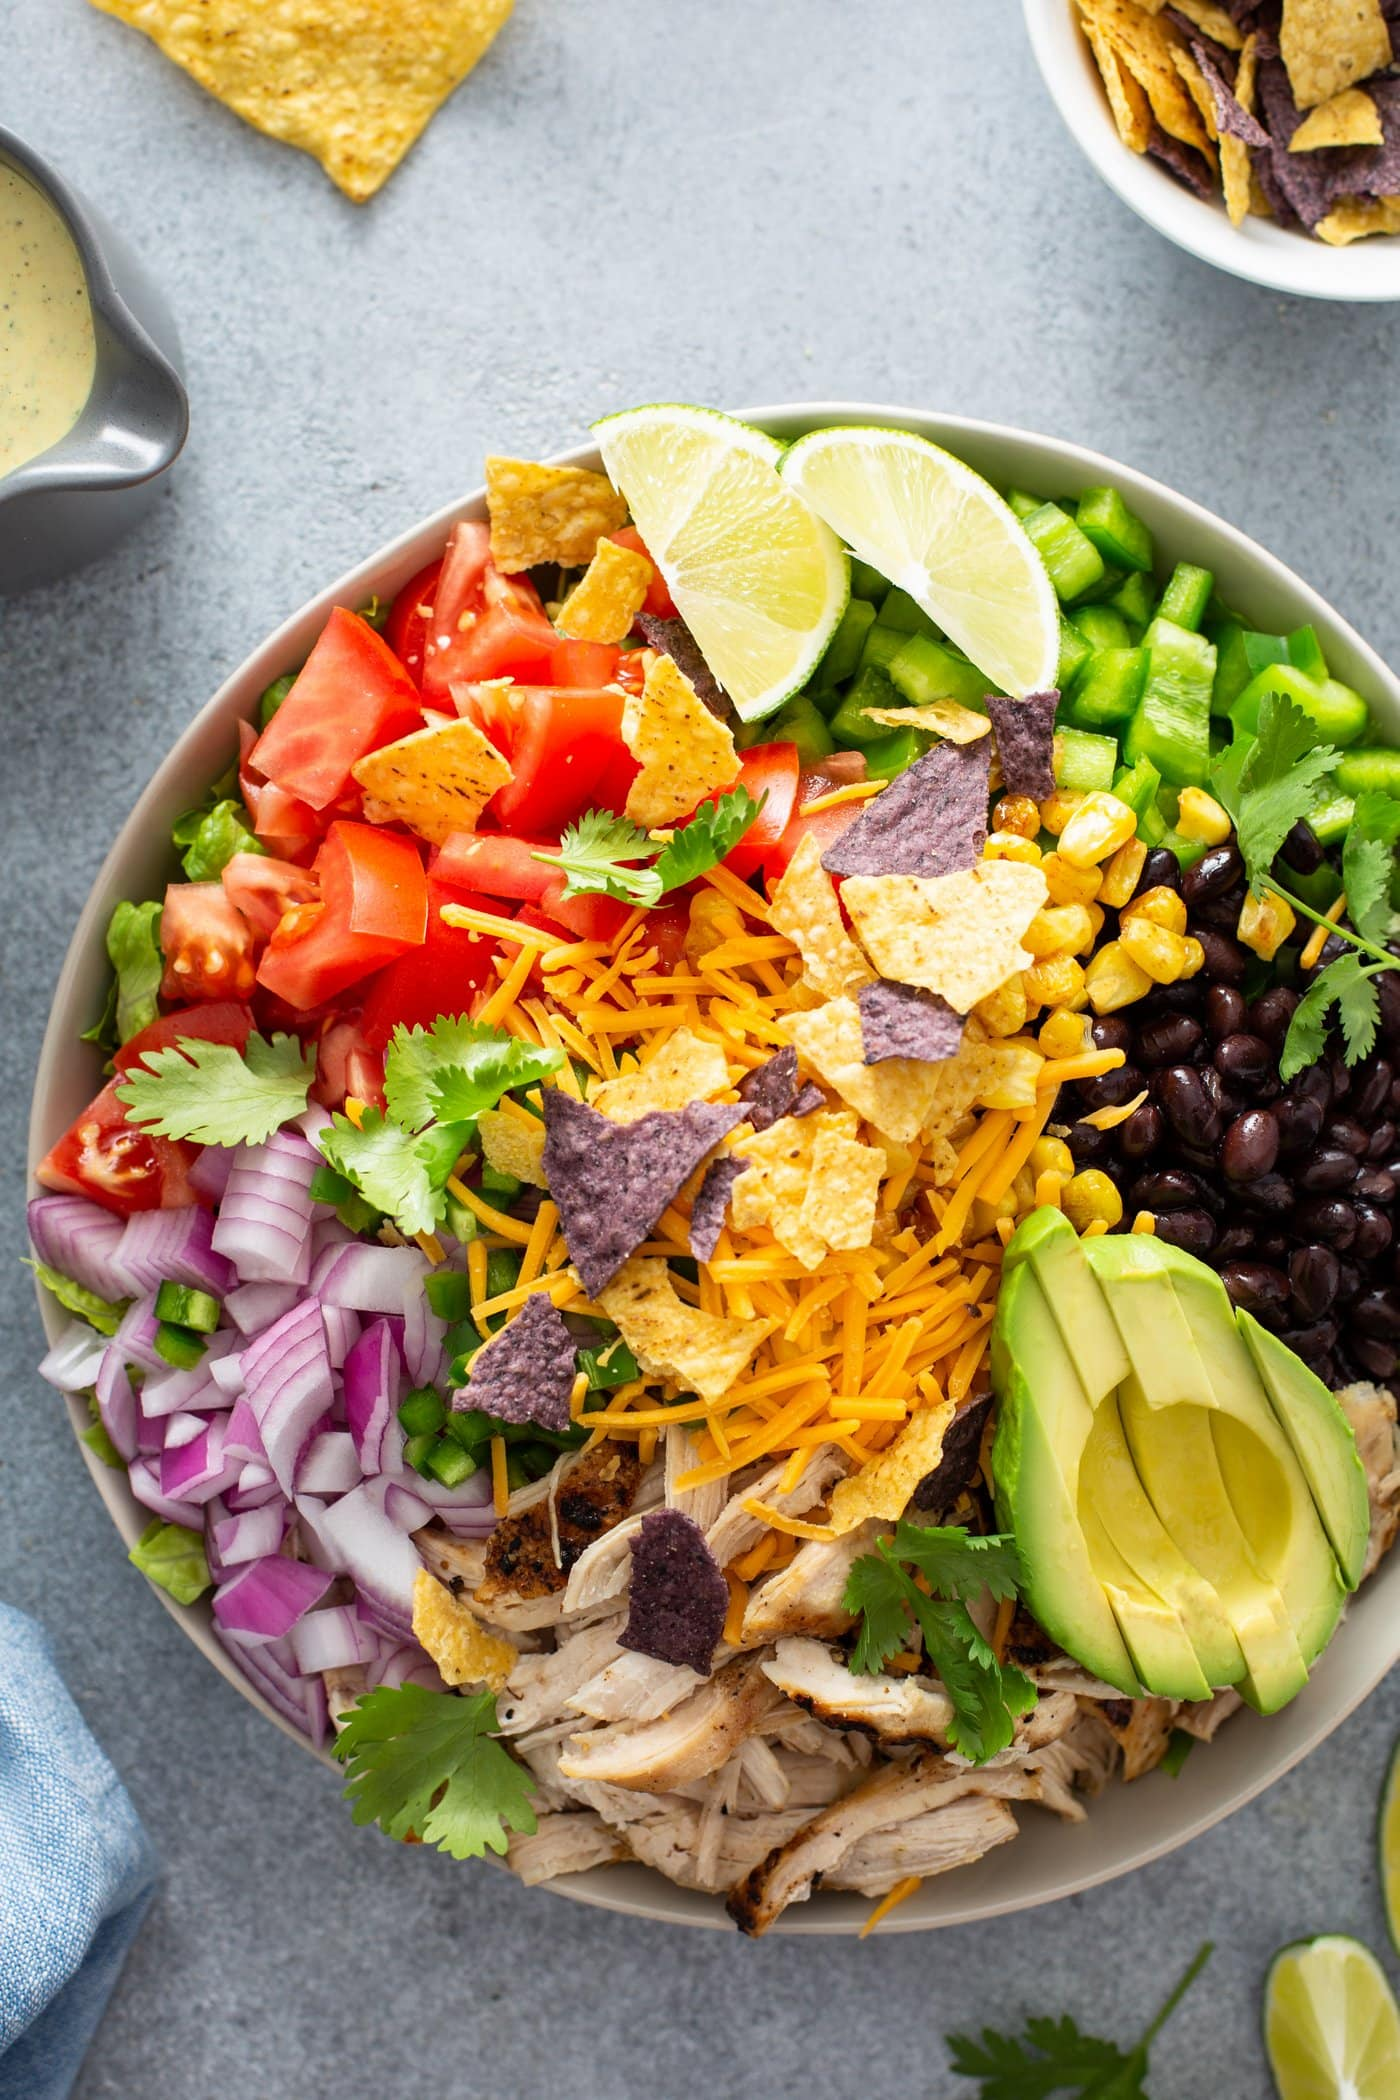 A chicken taco salad in a large bowl. It has chopped tomatoes, red onions, cheese, cilantro, lime wedges, chicken, corn, beans and peppers. There is also a sliced avocado.